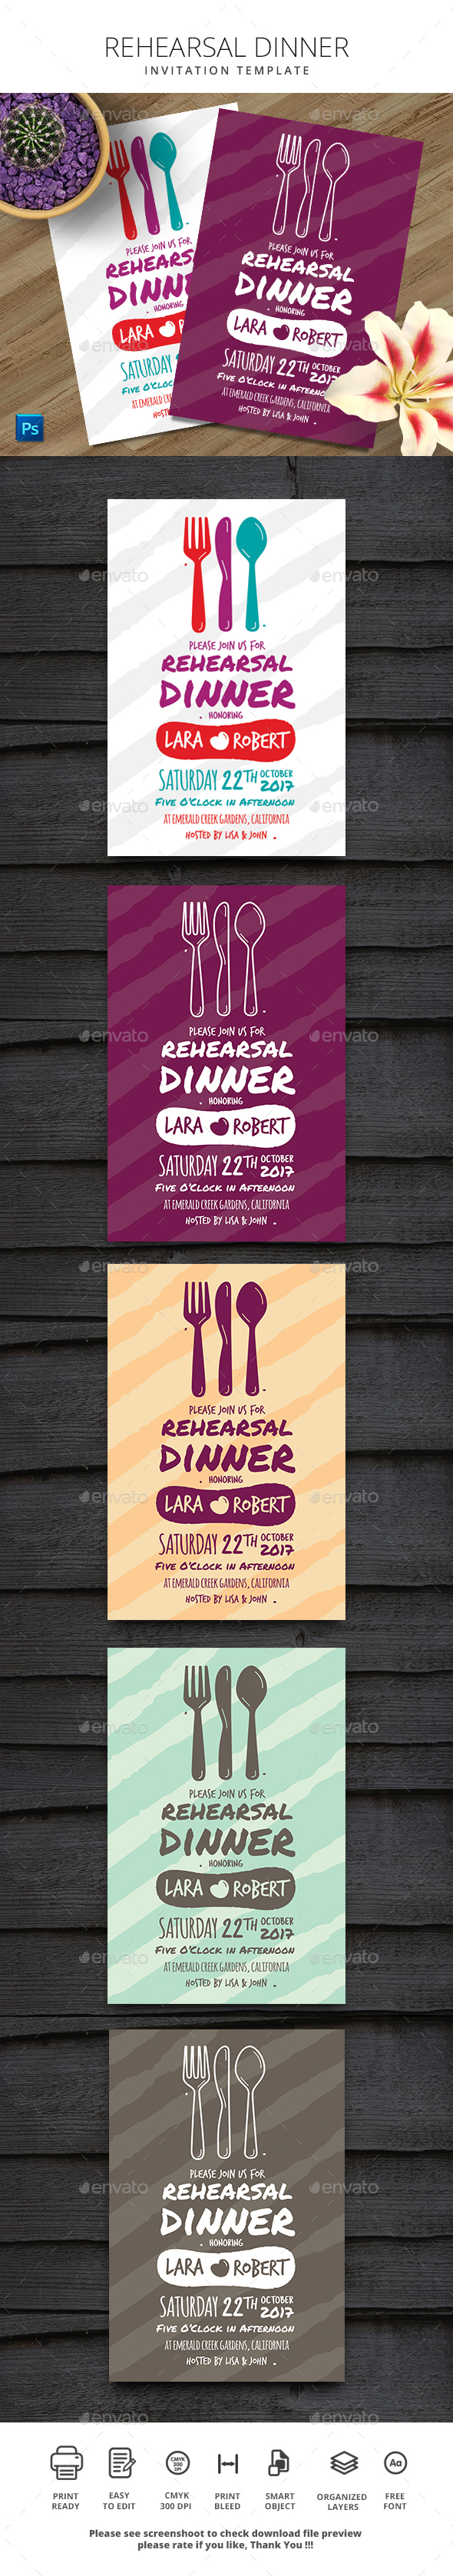 Rehearsal Dinner Invitation - Events Flyers